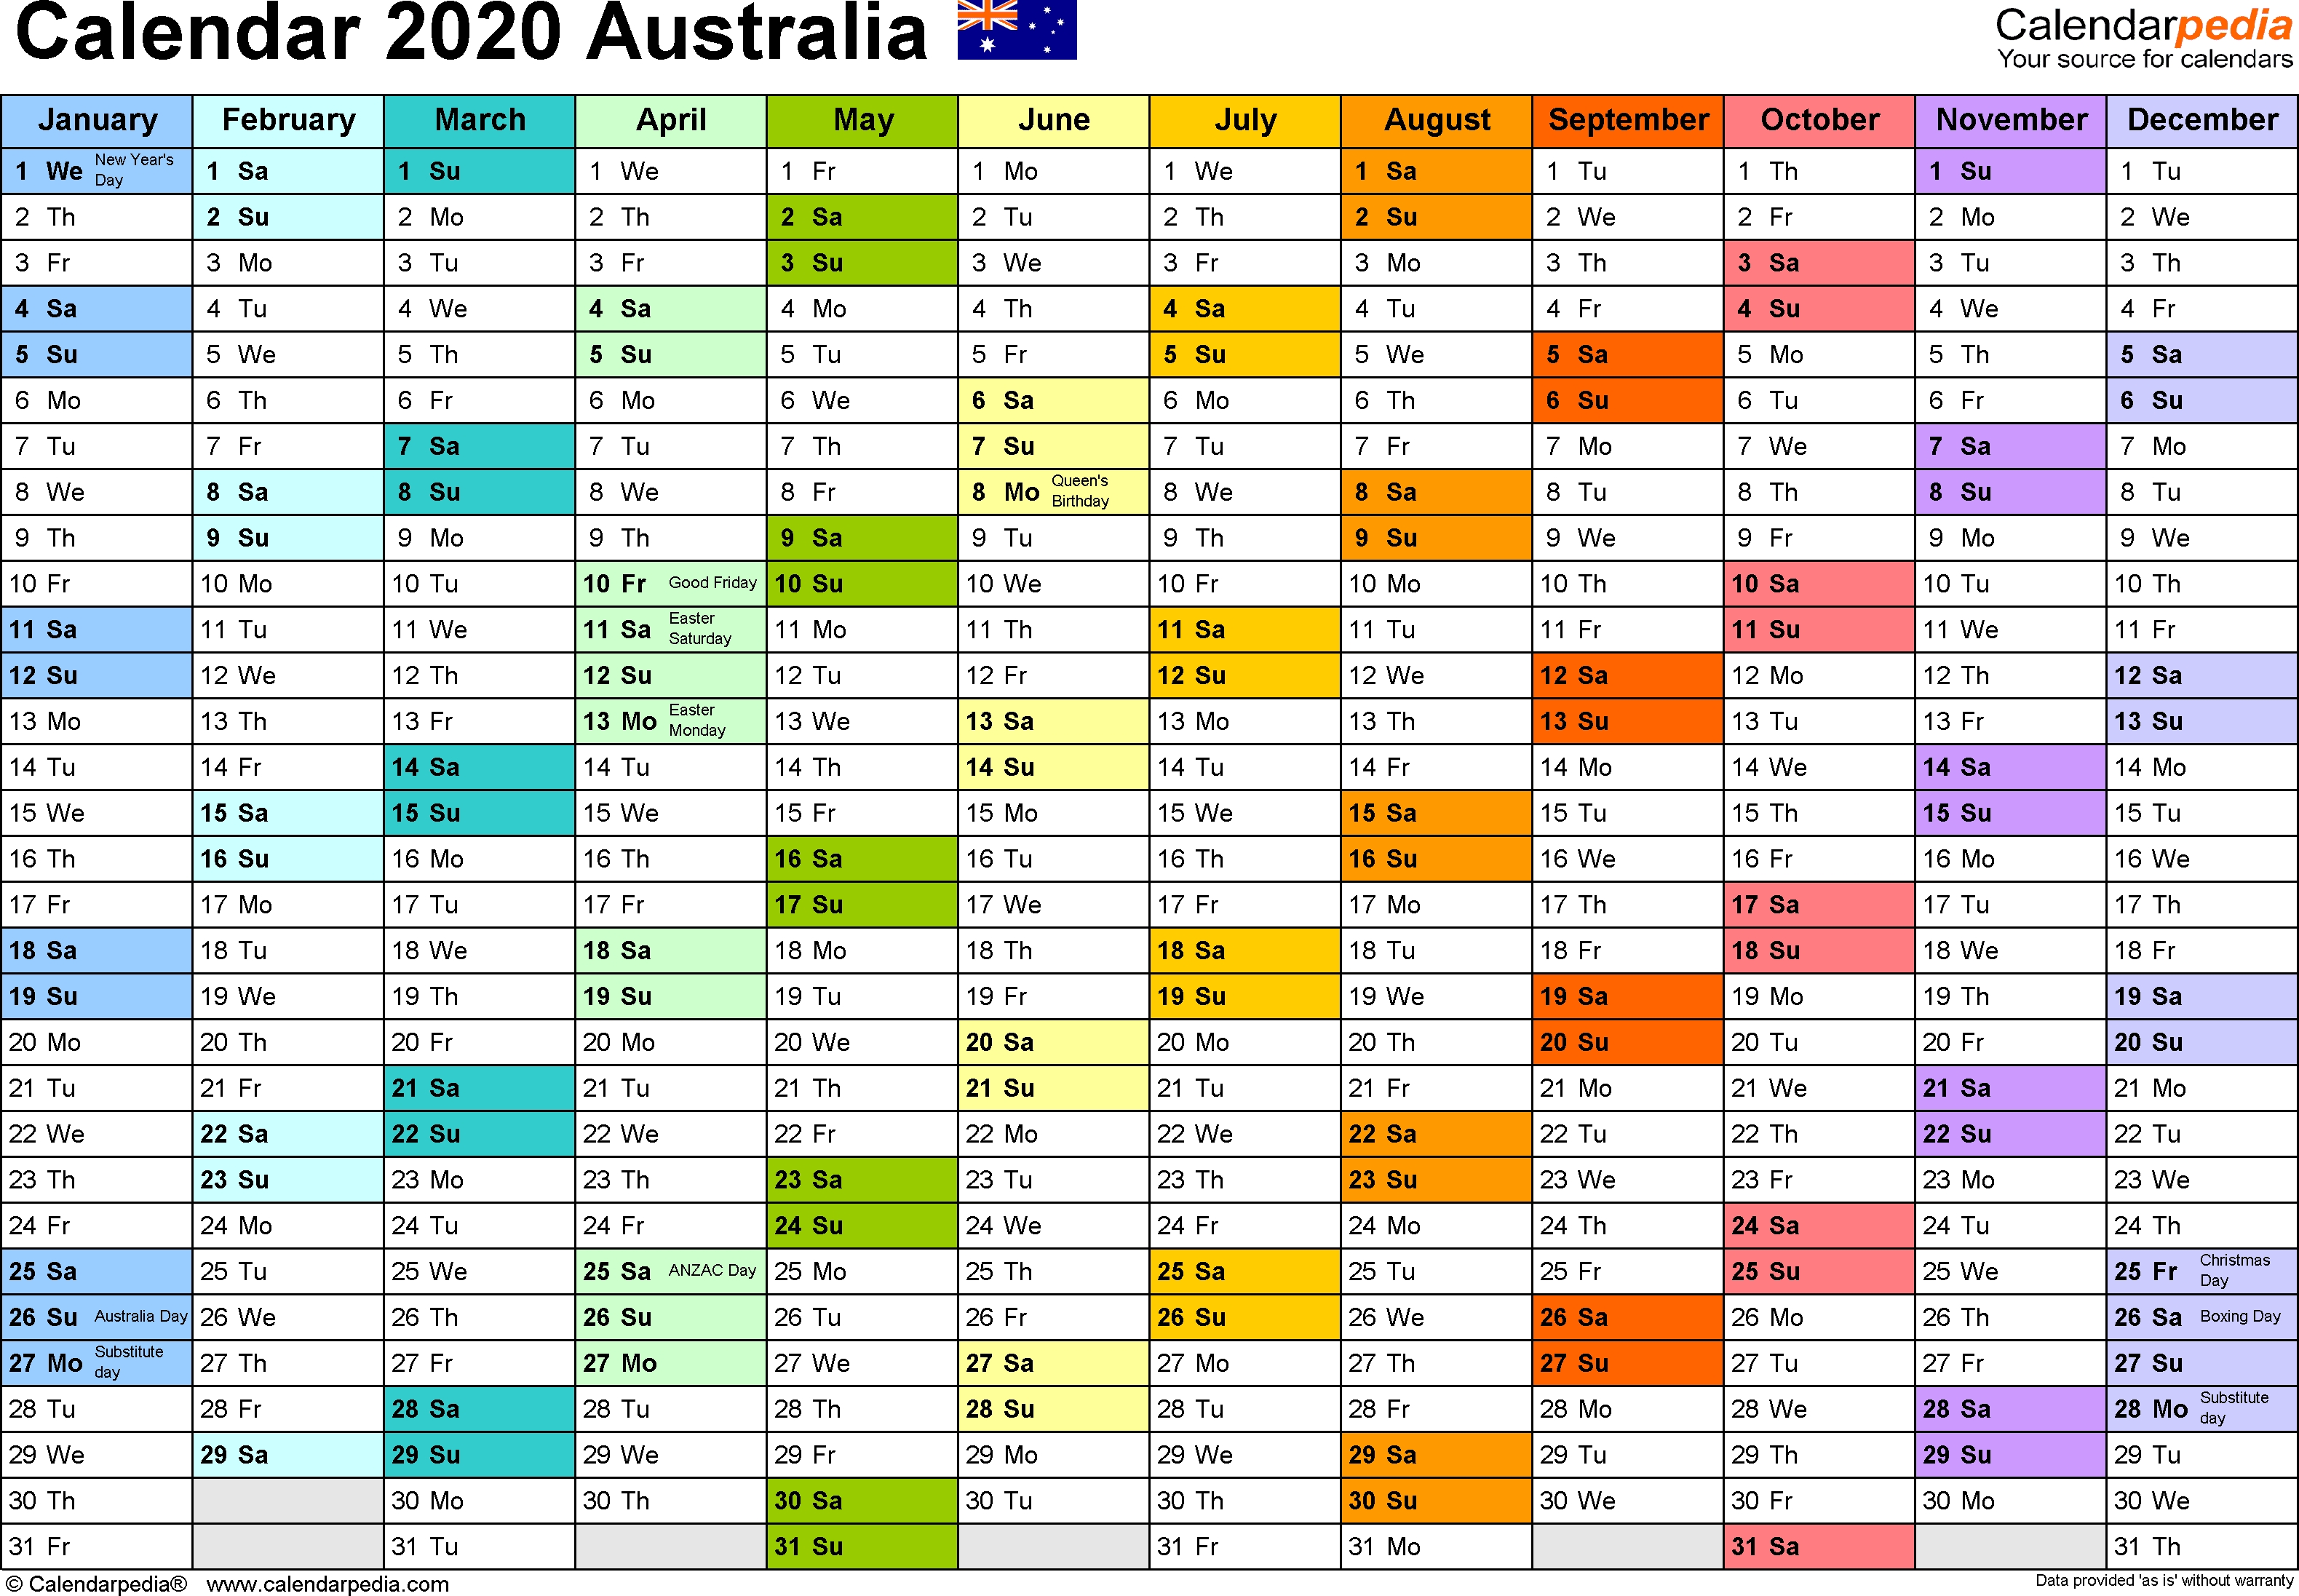 Australia Calendar 2020 - Free Printable Excel Templates  2020 Financial Year Dates Australia